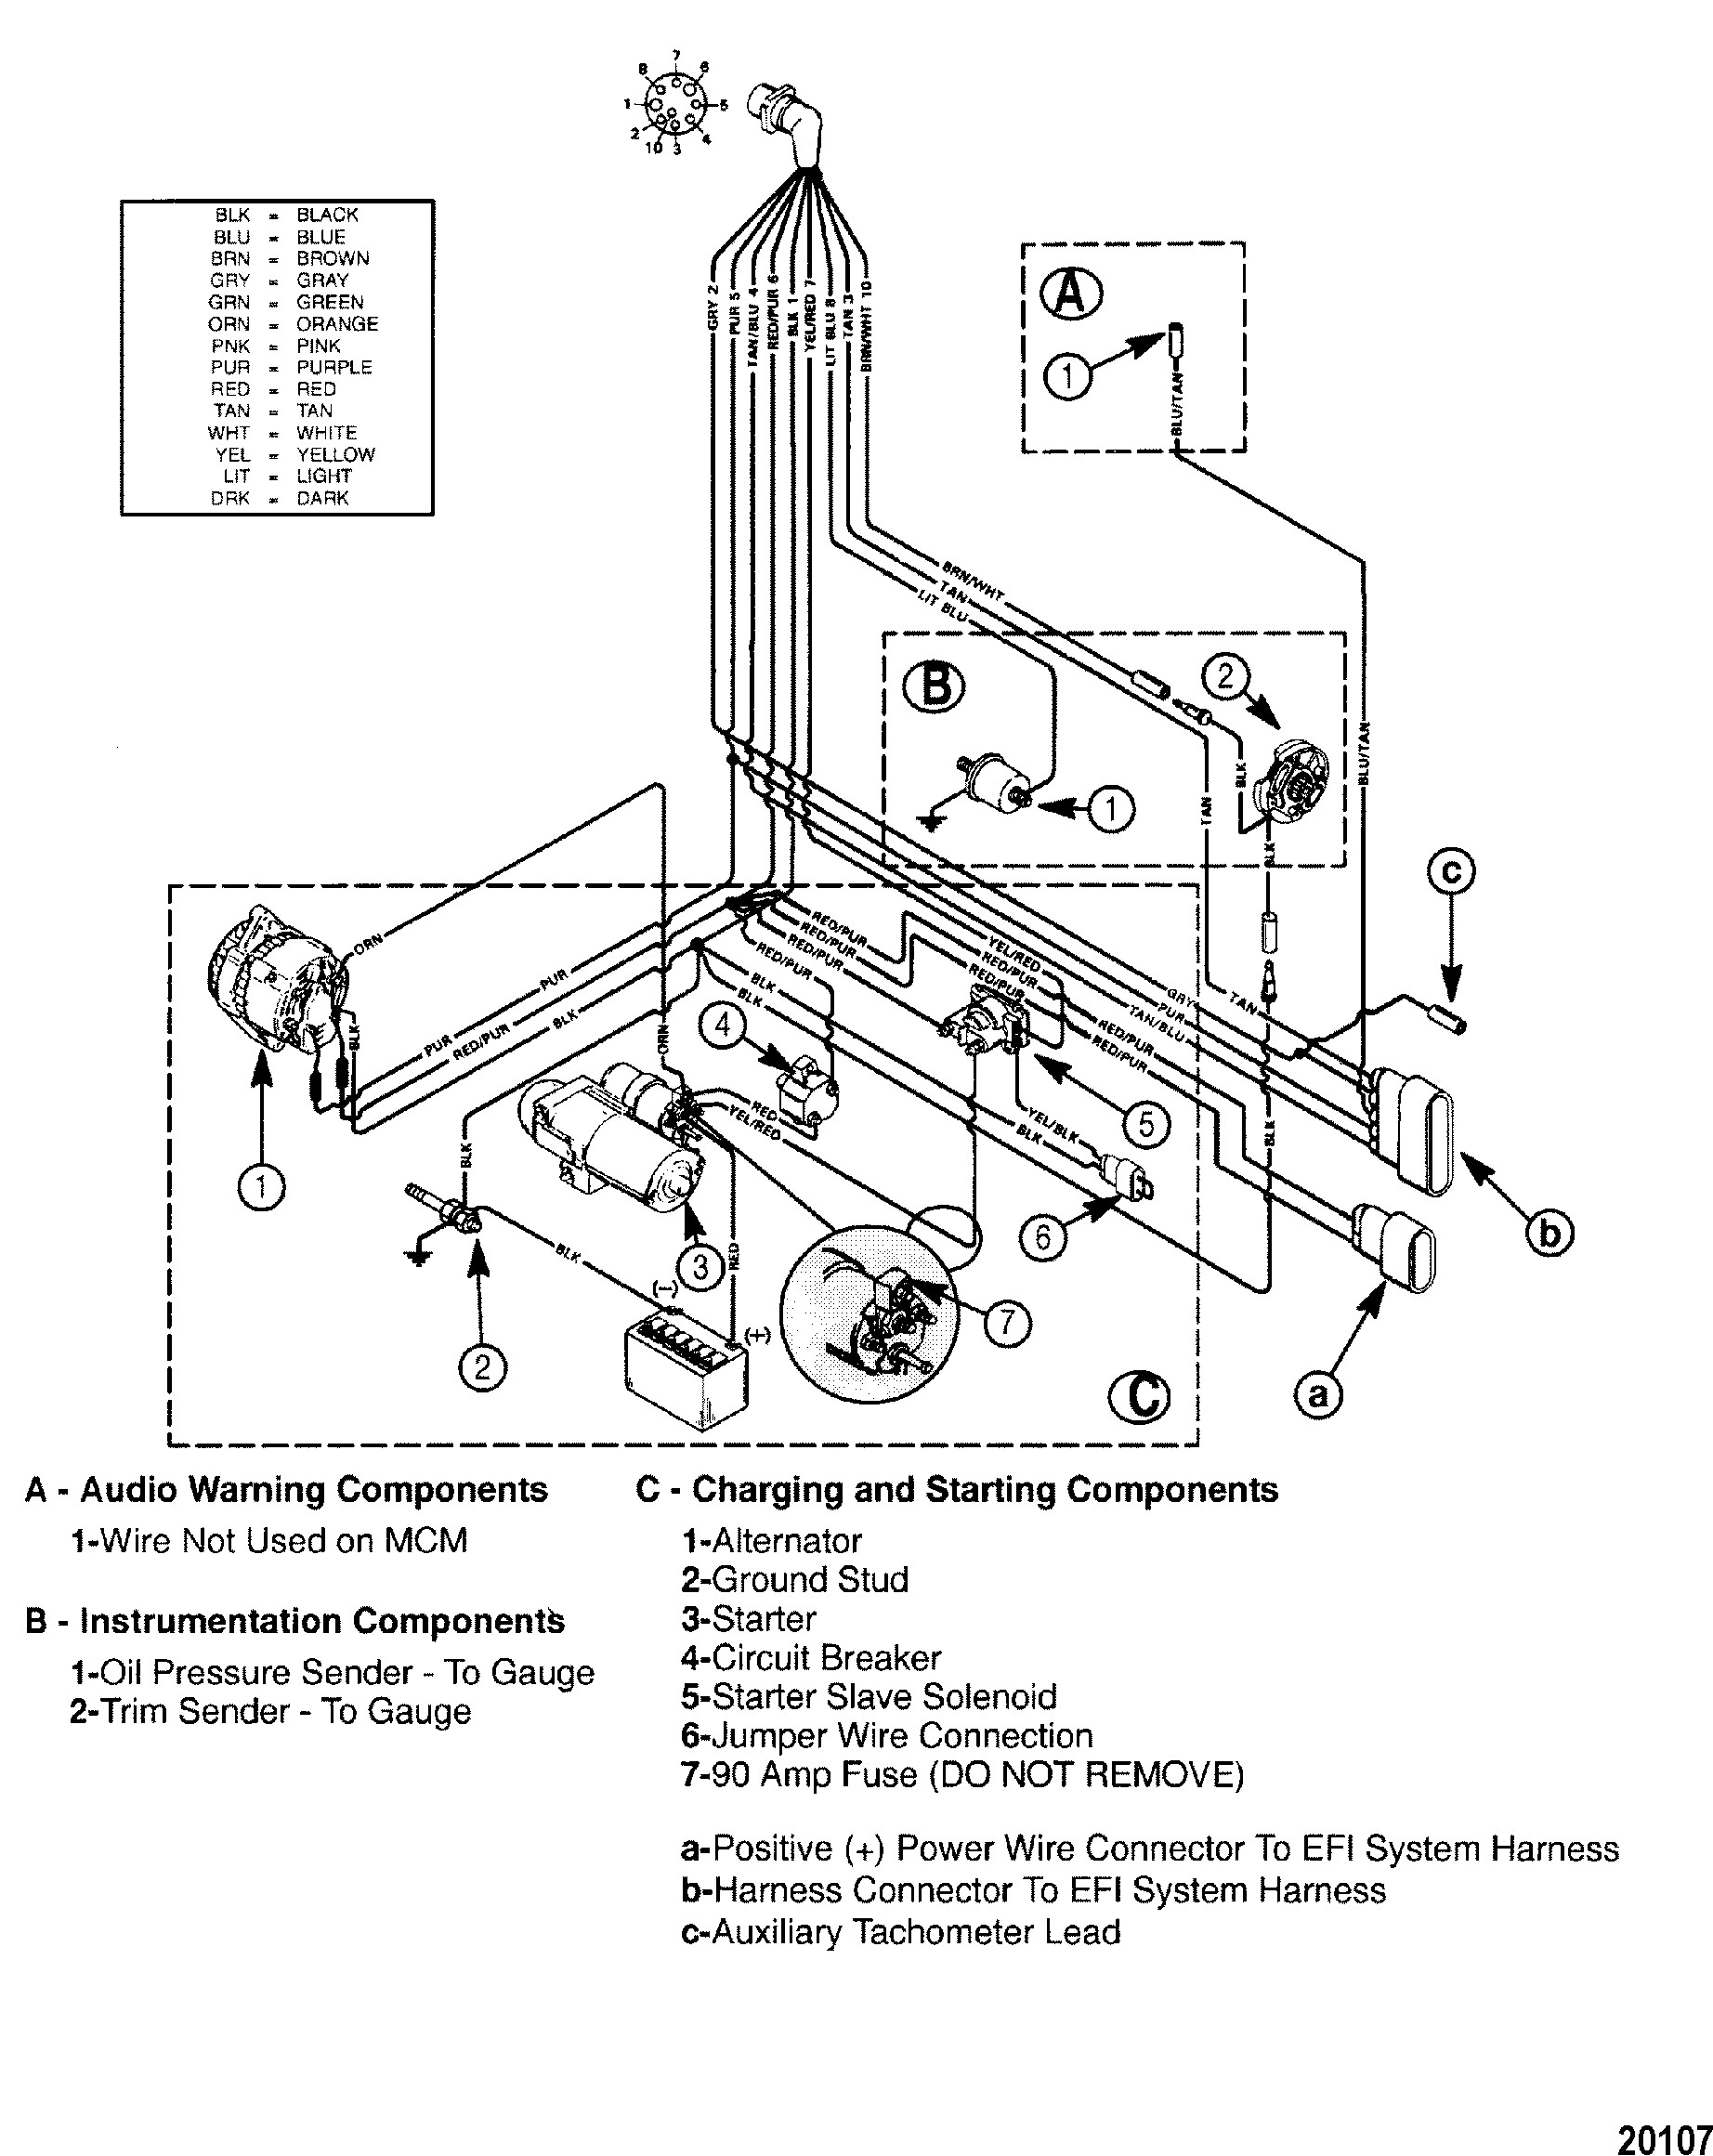 Jaguar Xj8 Fuse Diagram